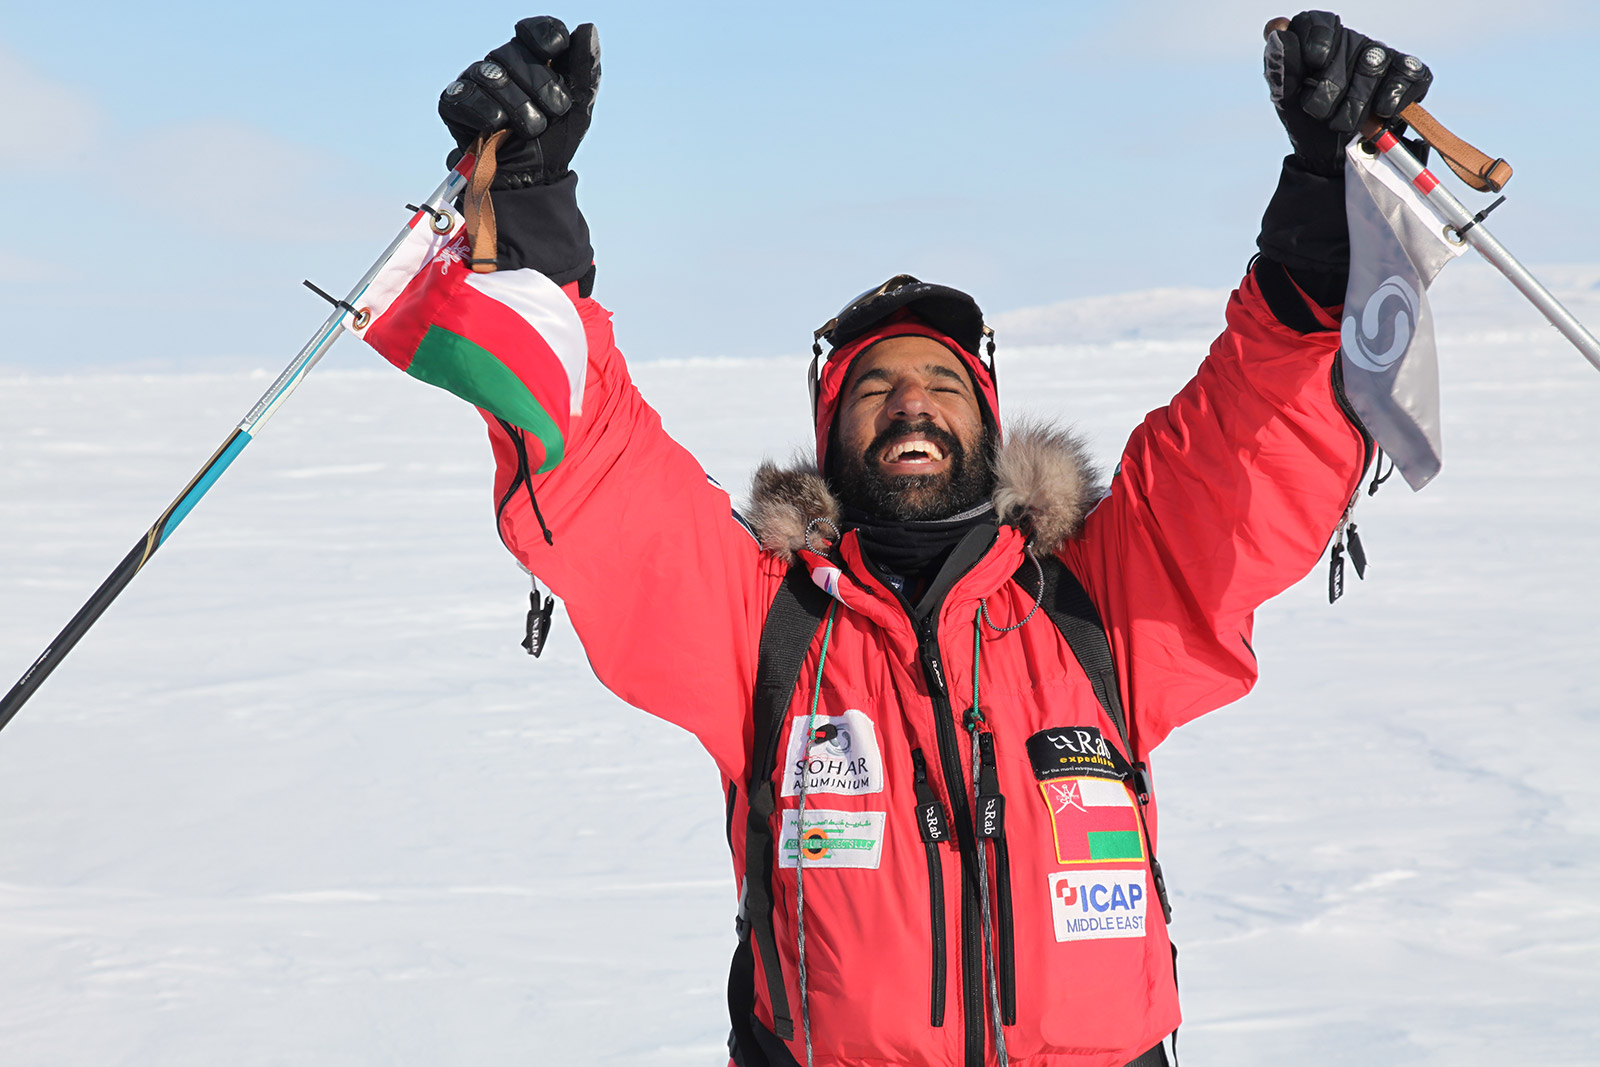 Nabil Al Busaidi The Arab Adventurer